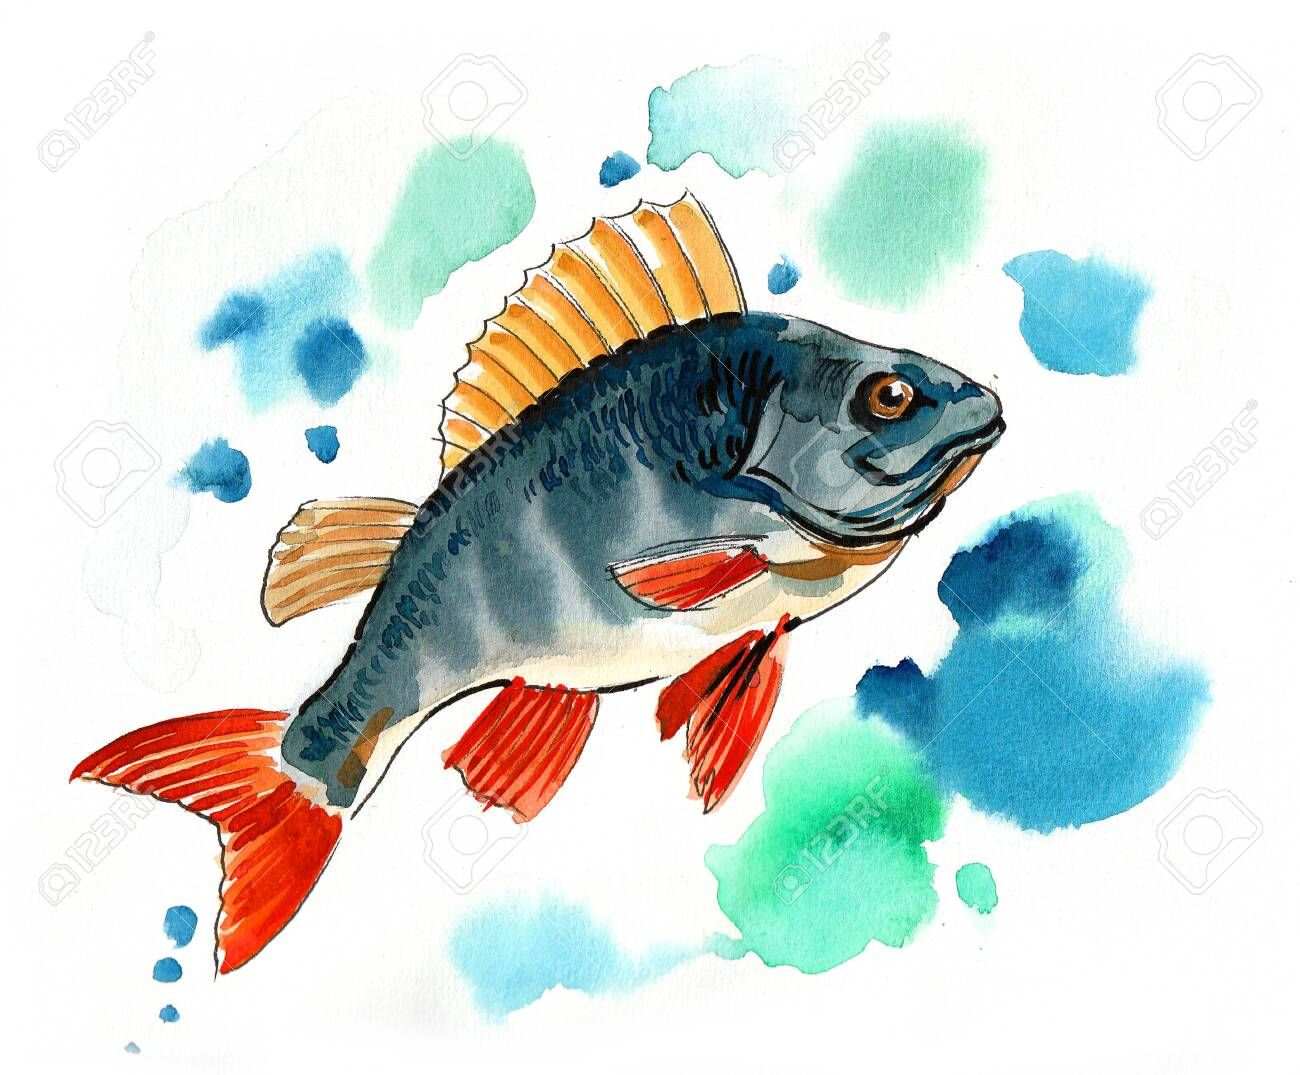 Fish In Water Watercolor Painting Ad Water Fish Painting Watercolor Watercolor Fish Fish Painting Watercolor Paintings